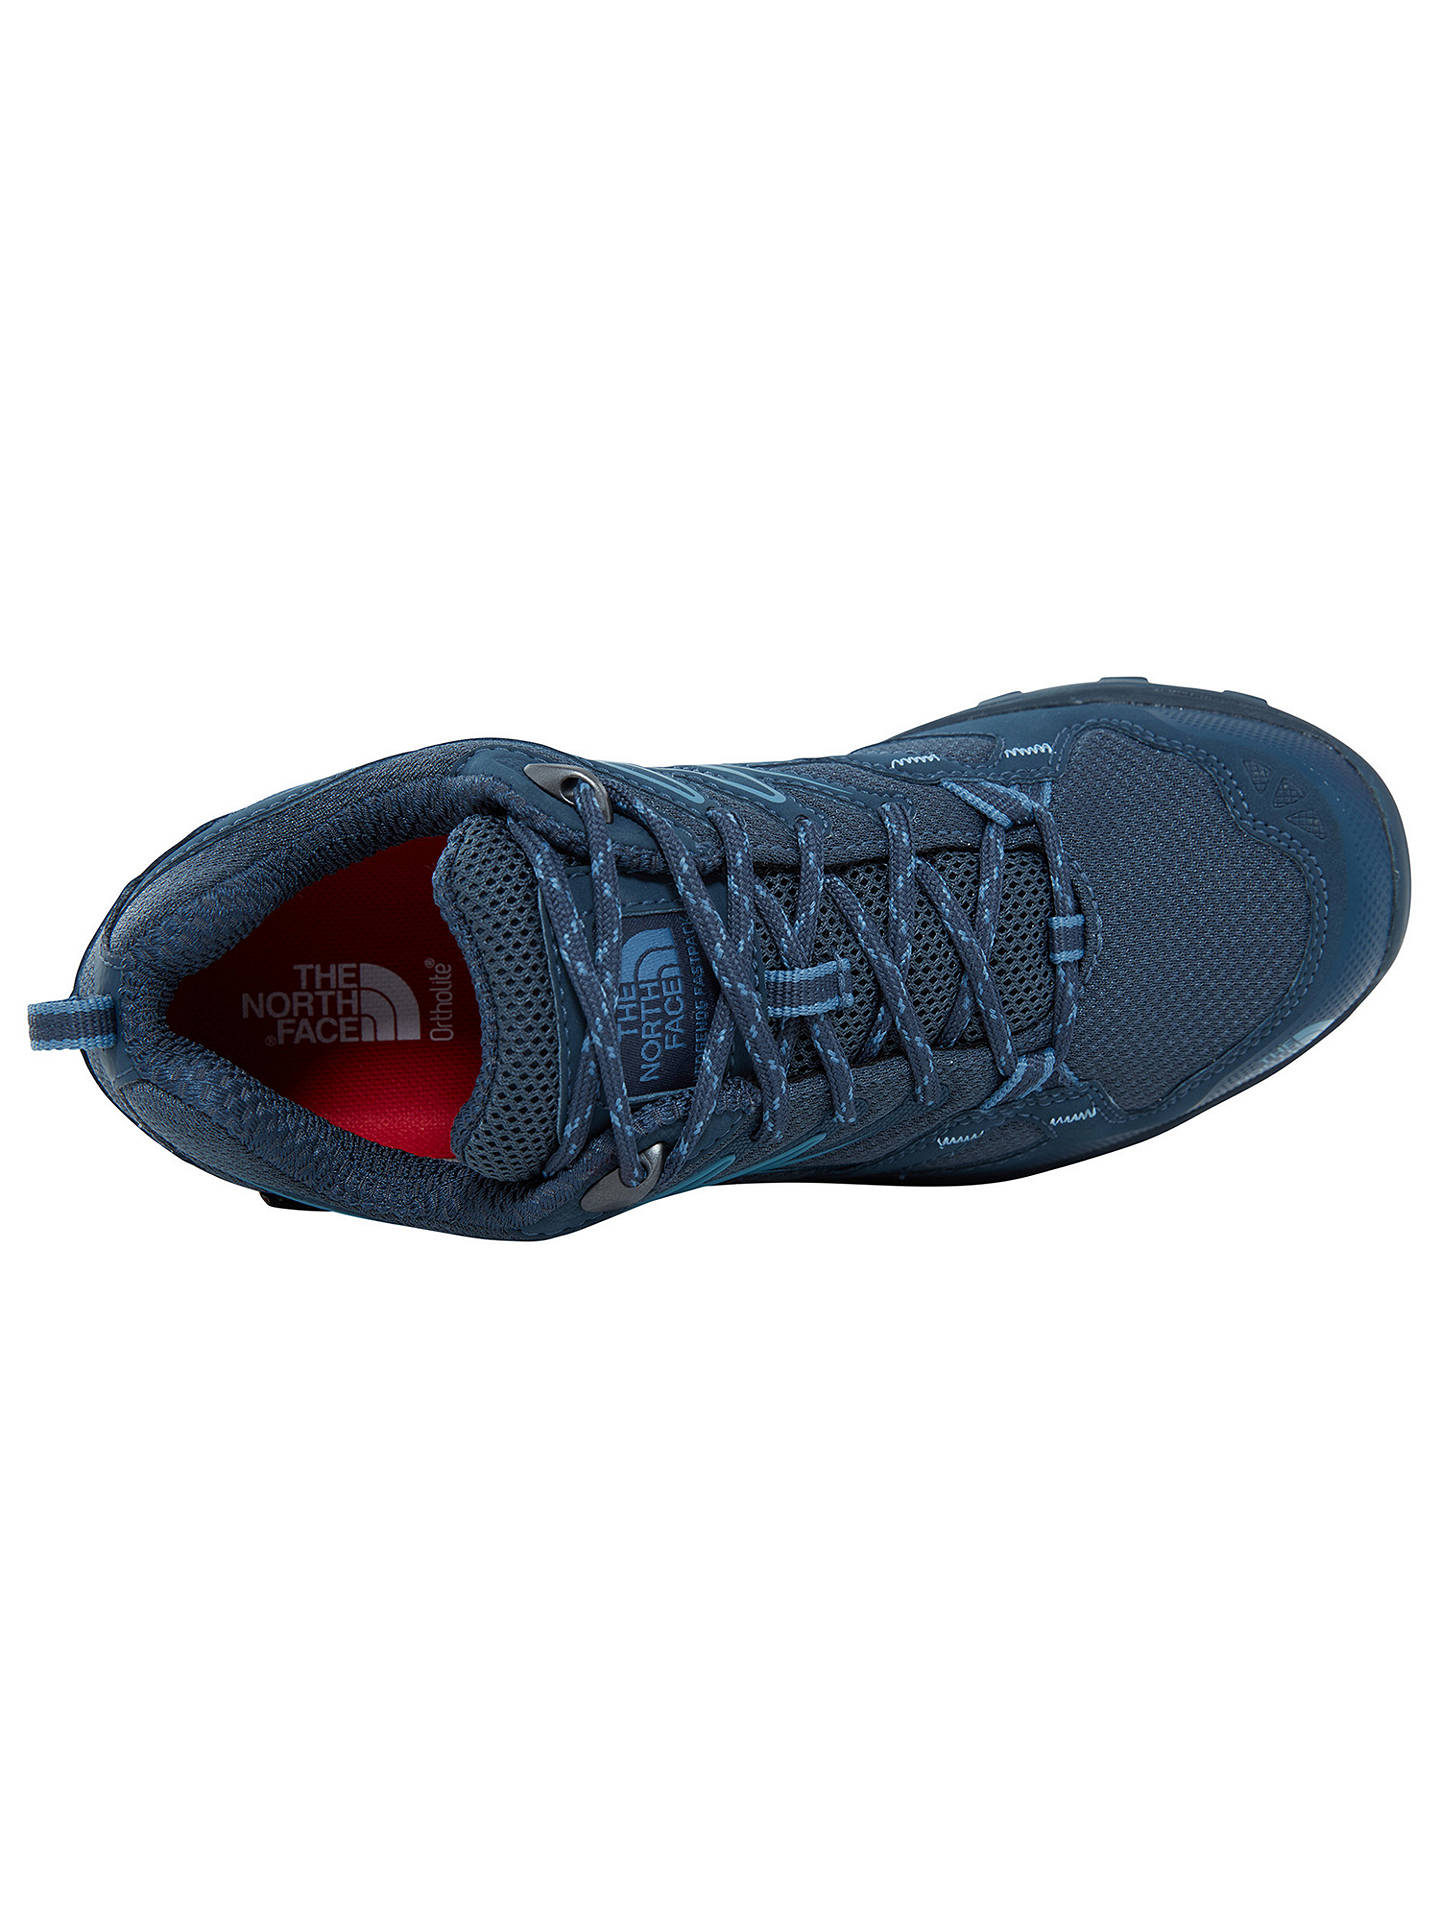 5576425b758 The North Face Hedgehog Hike Gore-Tex Women's Hiking Boots, Blue at ...